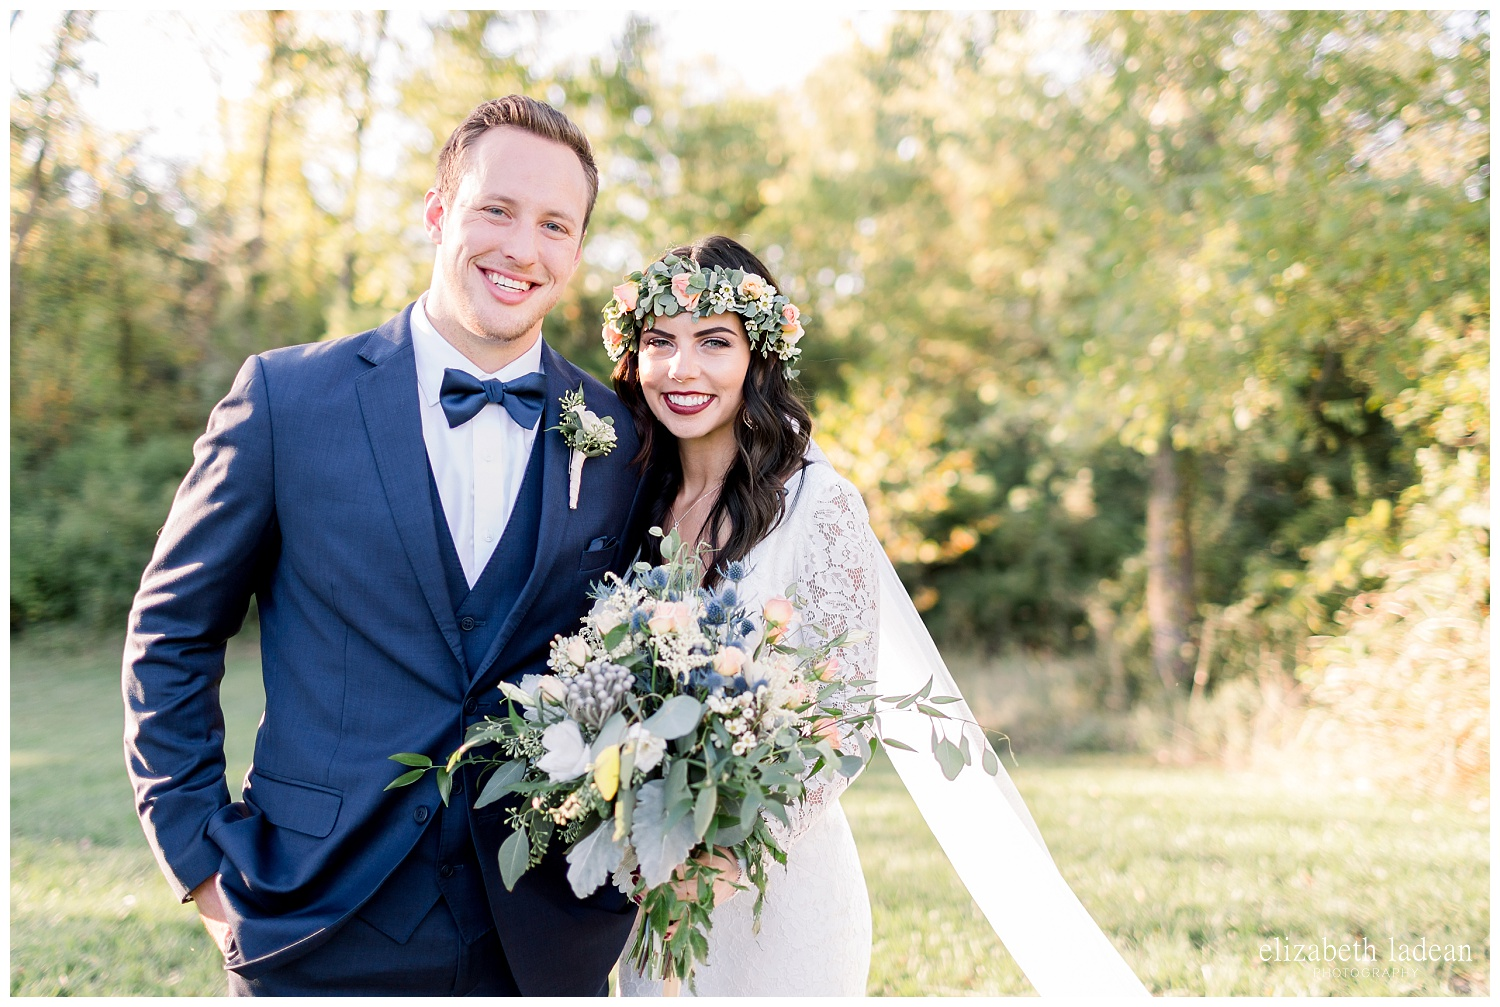 Willow-Creek-Blush-and-Blues-Outdoor-Wedding-Photography-S+Z2018-elizabeth-ladean-photography-photo_0597.jpg